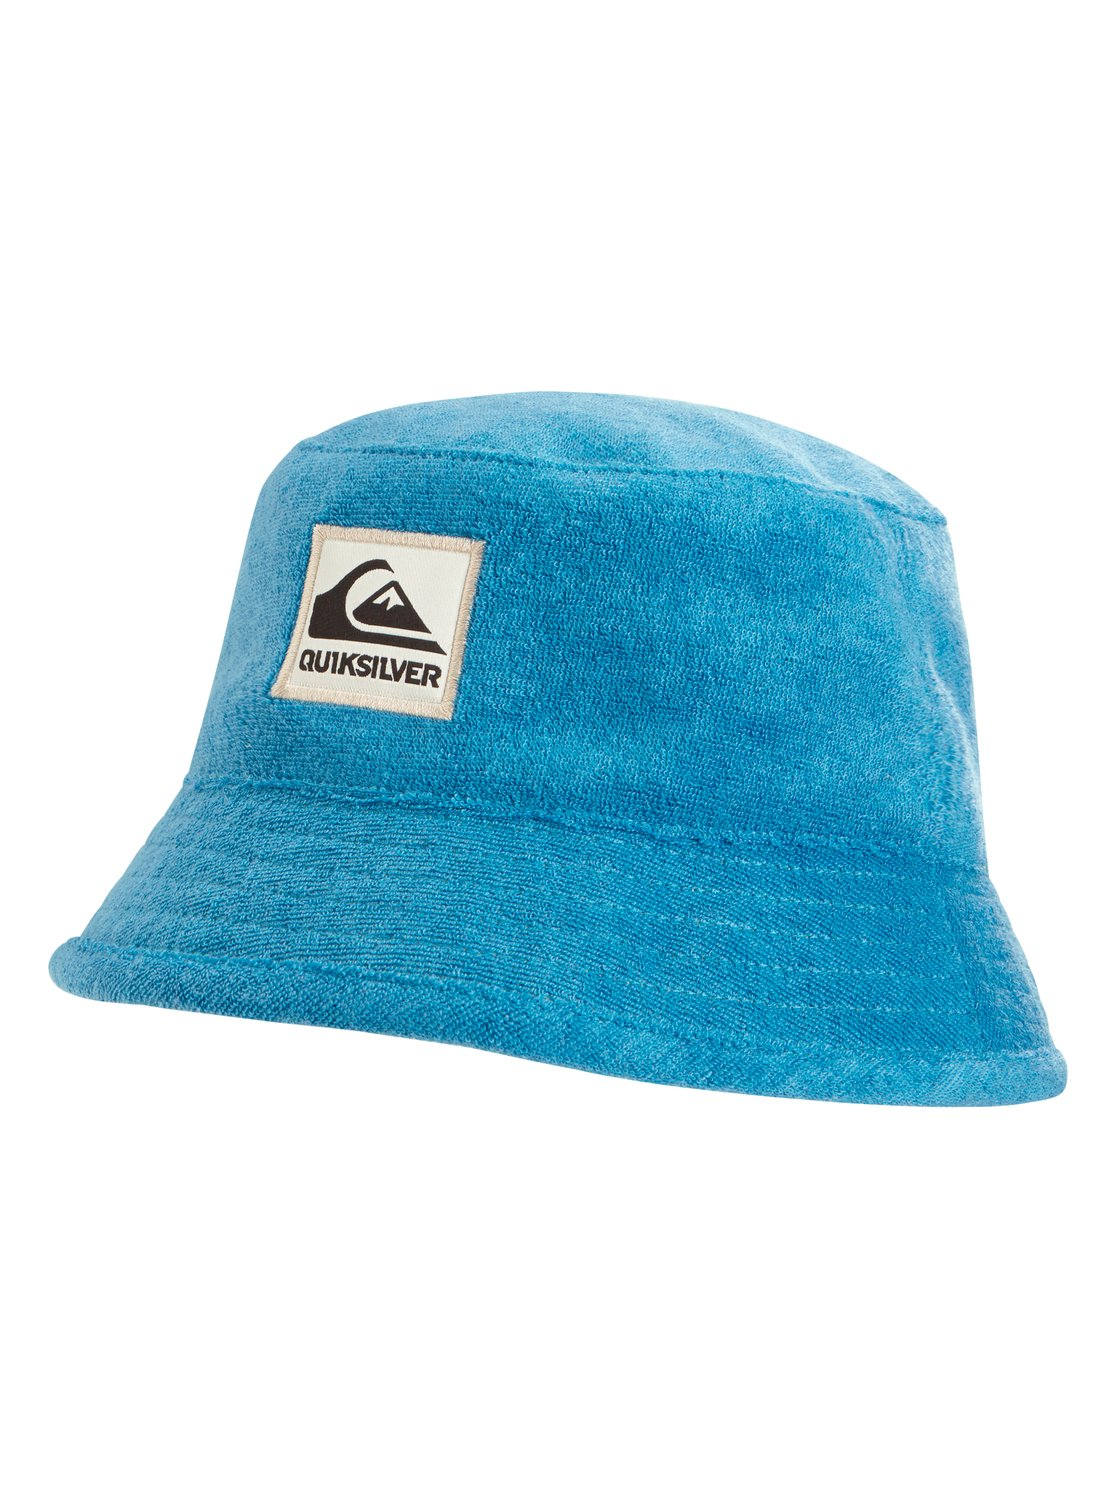 0f47a1f63 low price quiksilver baby hat 704da c2db1